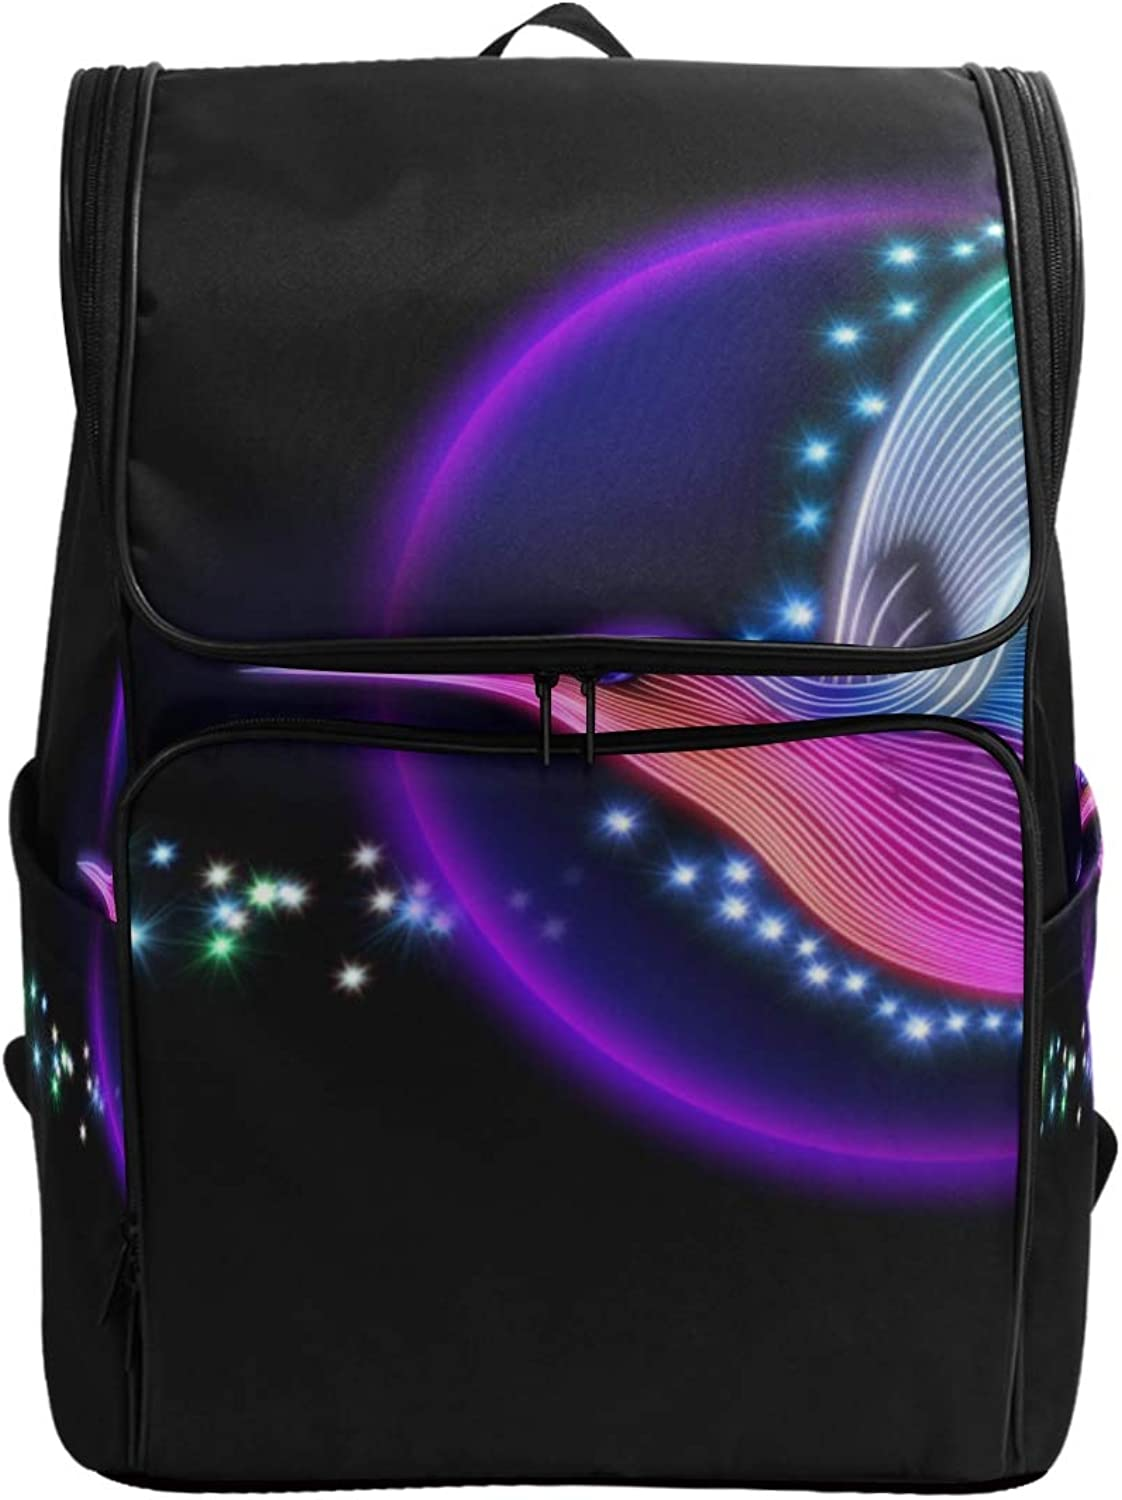 FANTAZIO 3D Render Hummingbird with Stars Laptop Outdoor Backpack Travel Hiking Camping Rucksack Pack, Casual Large College School Daypack